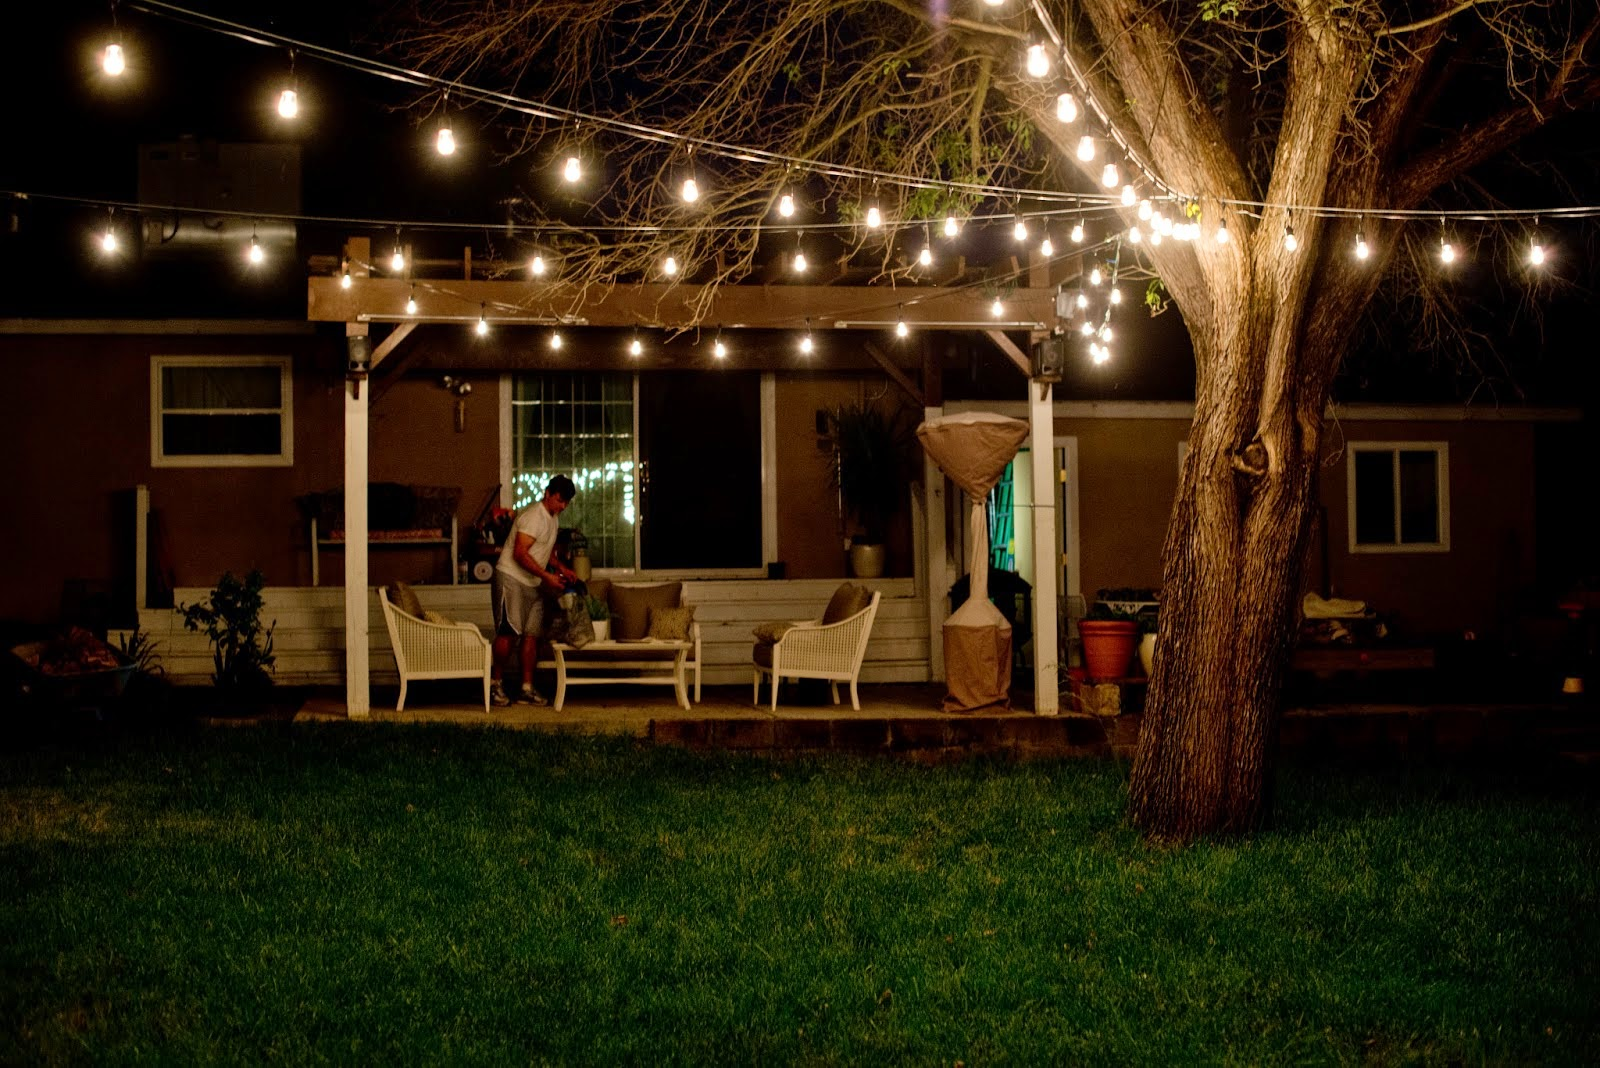 Lightshare: Light Up the Outdoor Patio or Porch With ... on Backyard String Light Designs id=39930